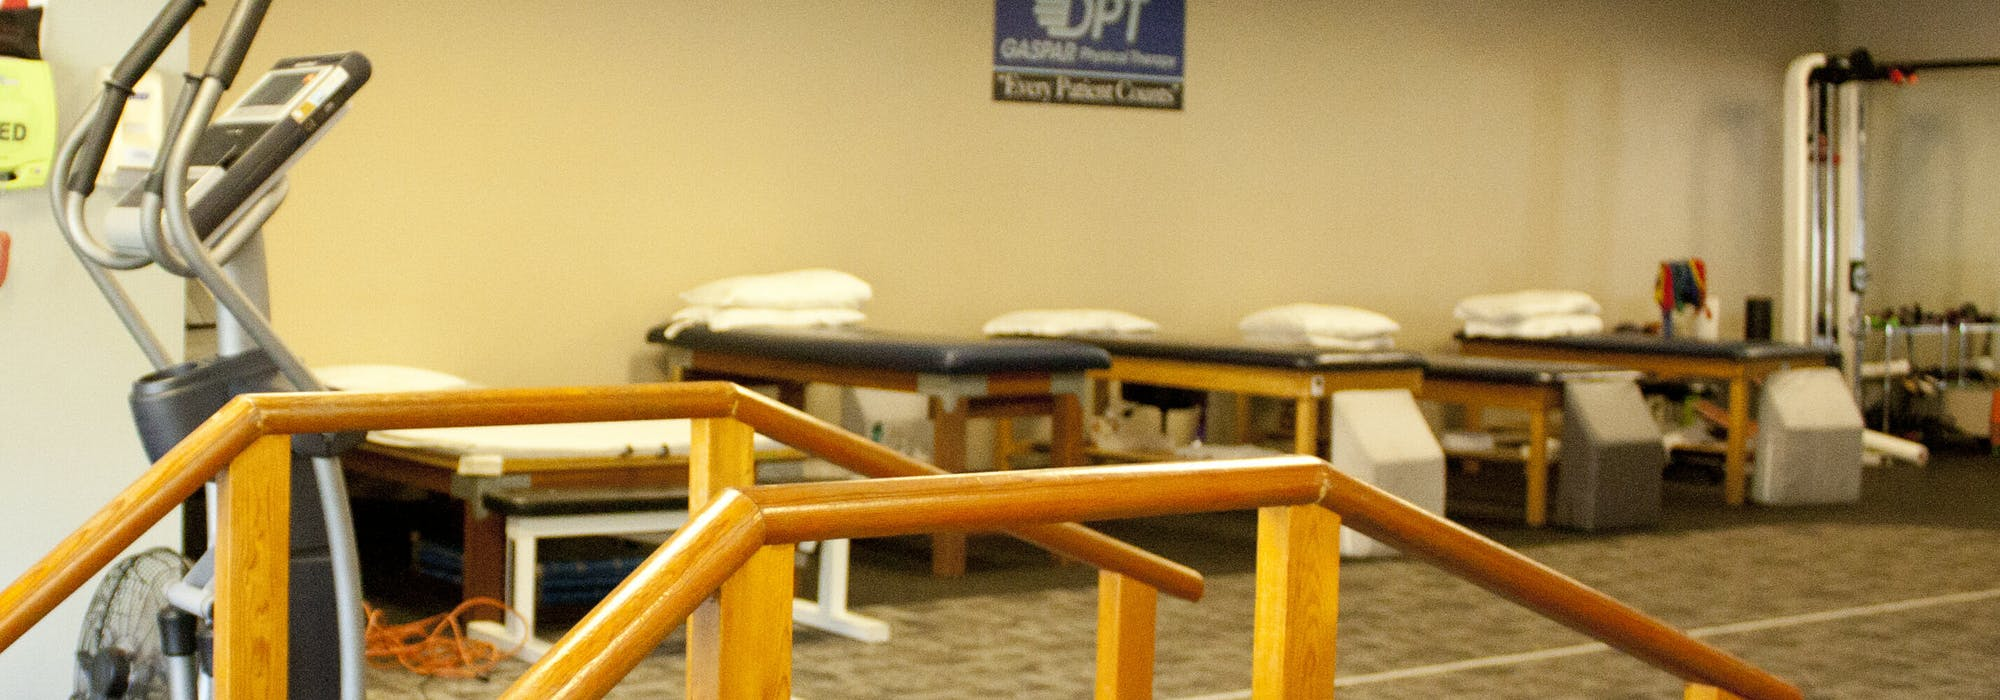 Board california physical therapy - Physical Therapy Hand Therapy Cardiac Rehab Aquatic Therapy